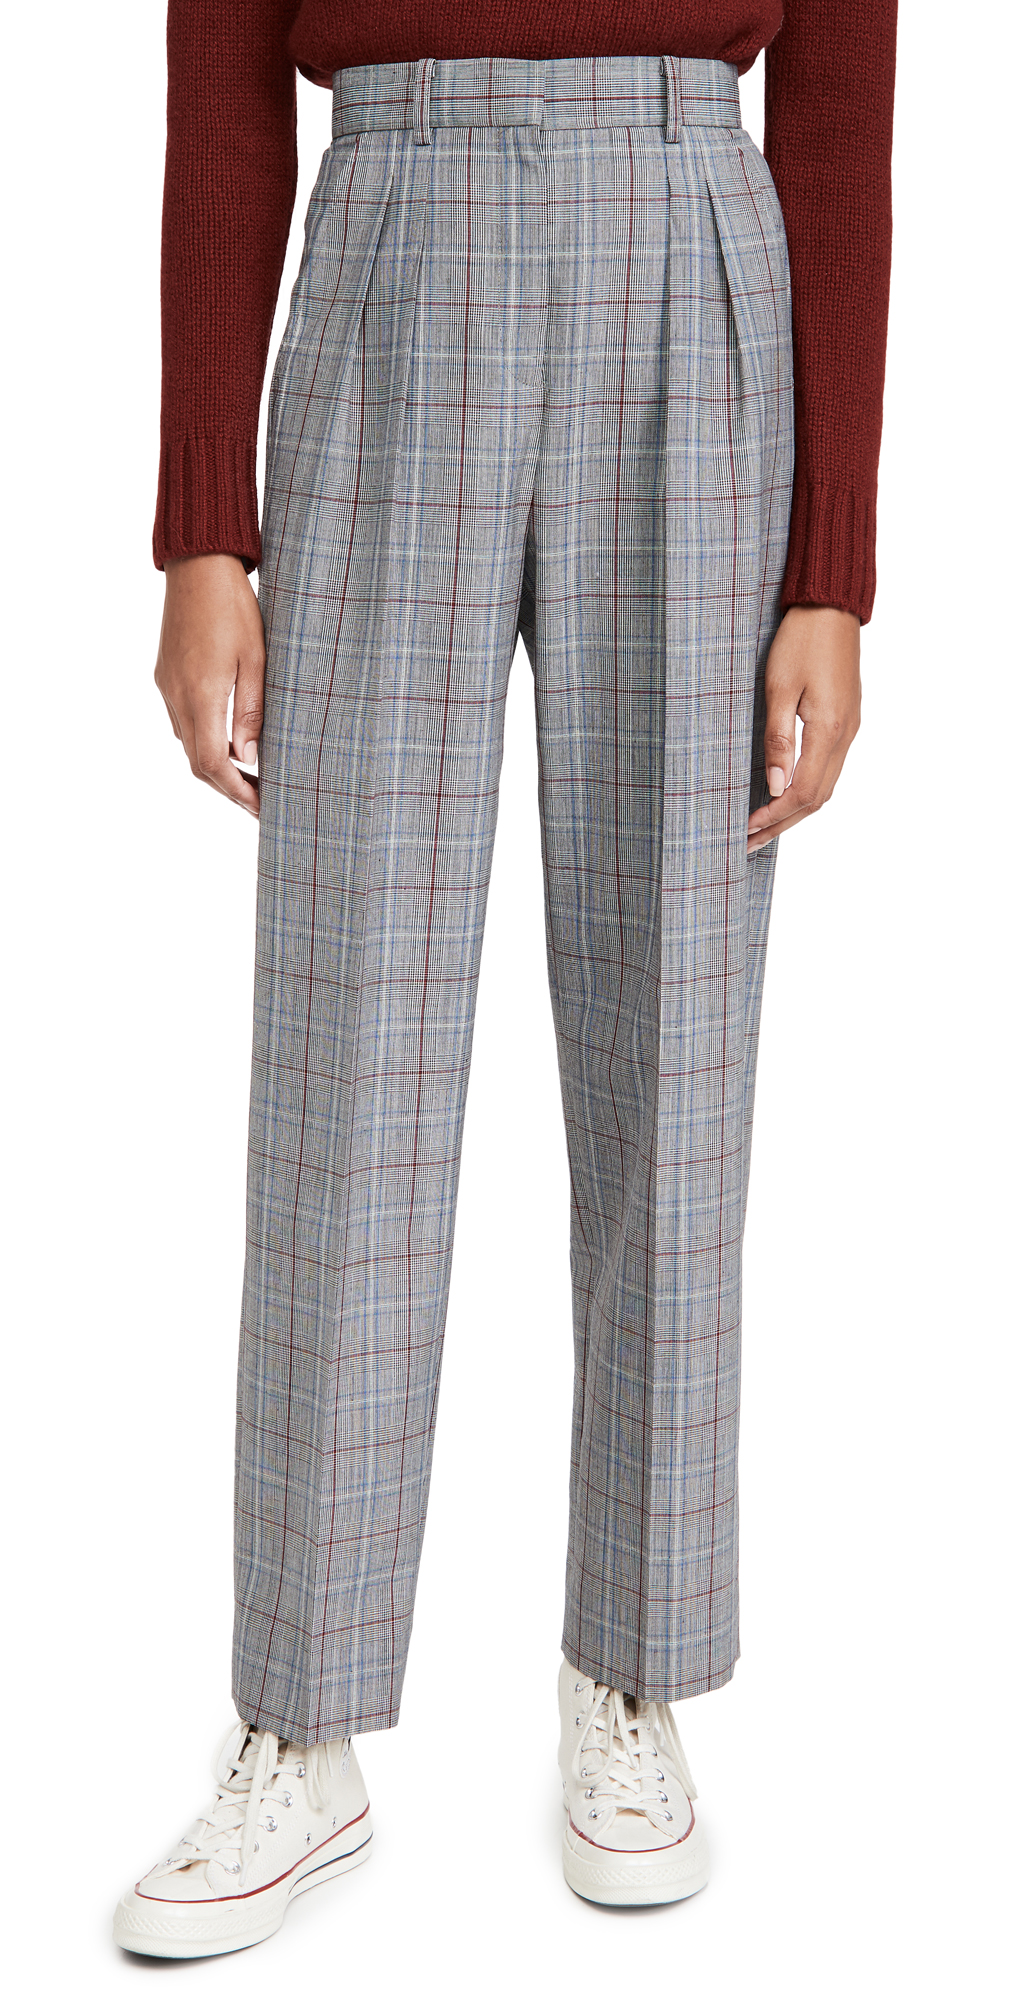 Tory Burch Plaid Pleated Trousers